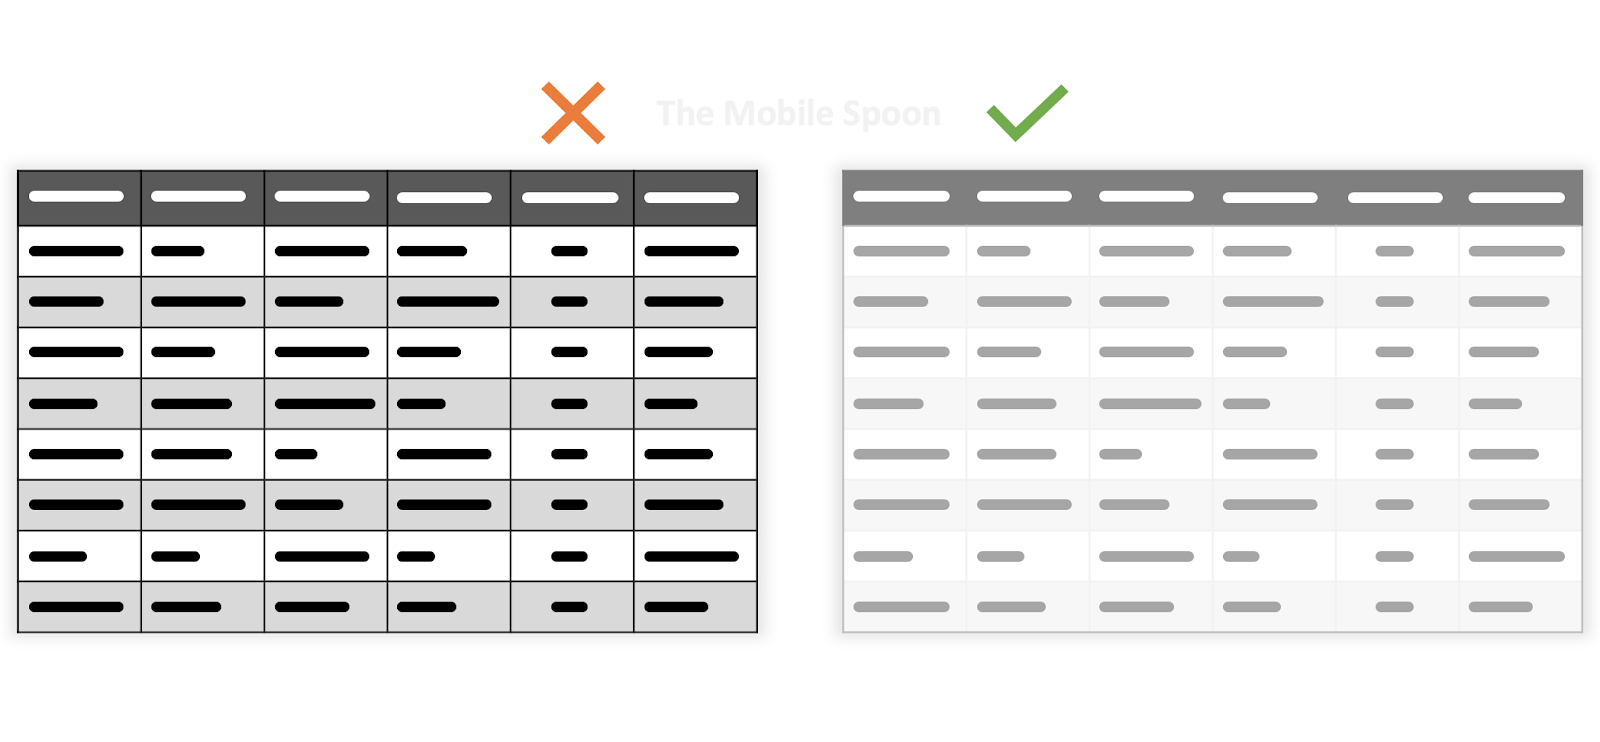 Turn black into gray - How to design data tables that don't suck - the 20 rules guide